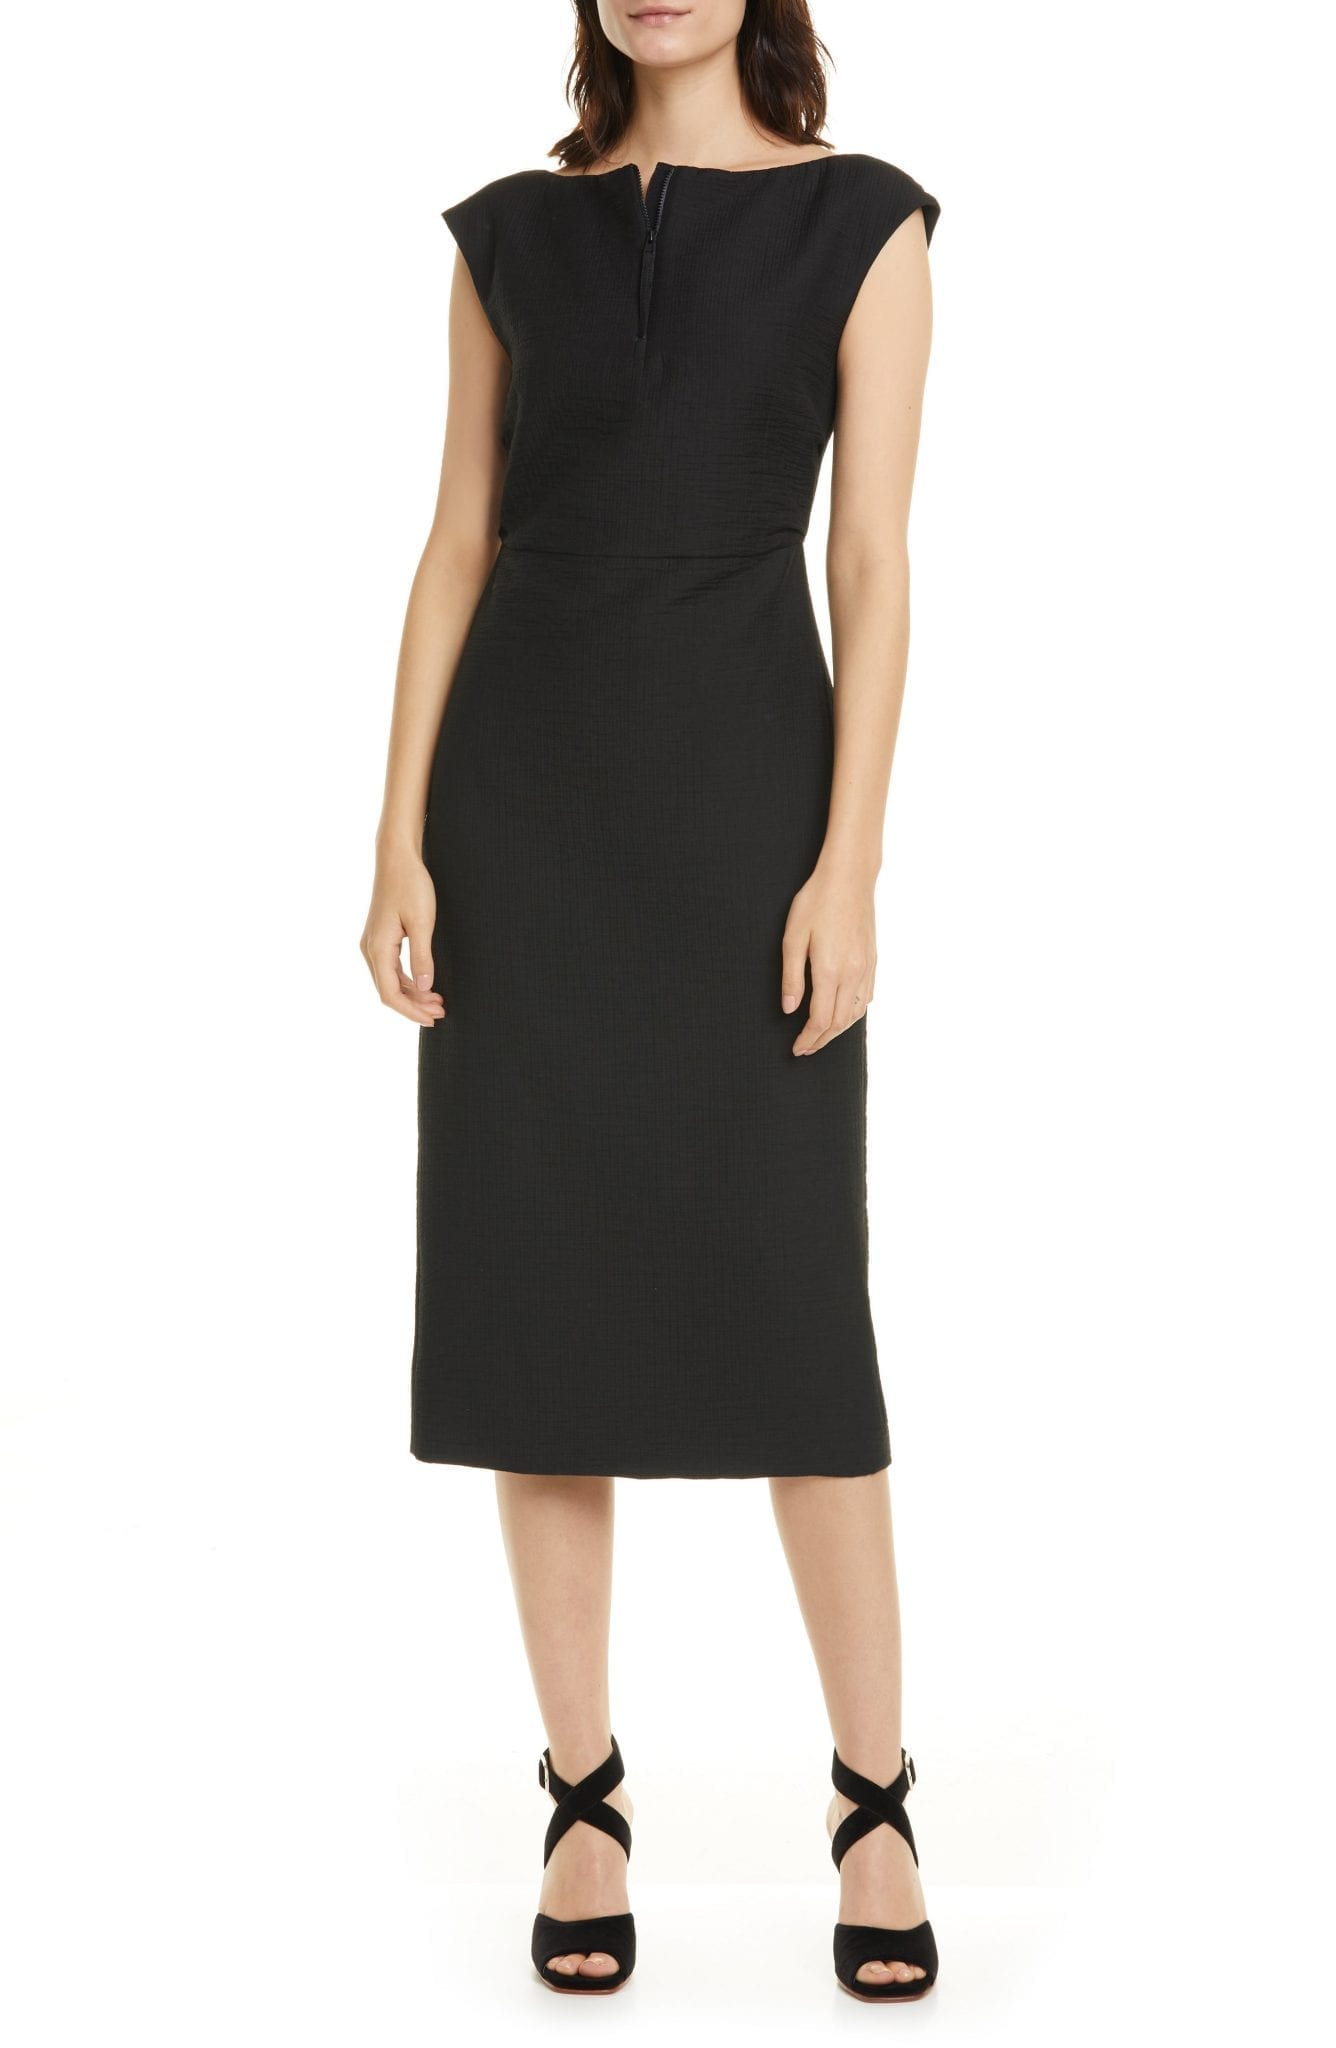 RACHEL COMEY Leonard Quarter Zip Sheath Dress